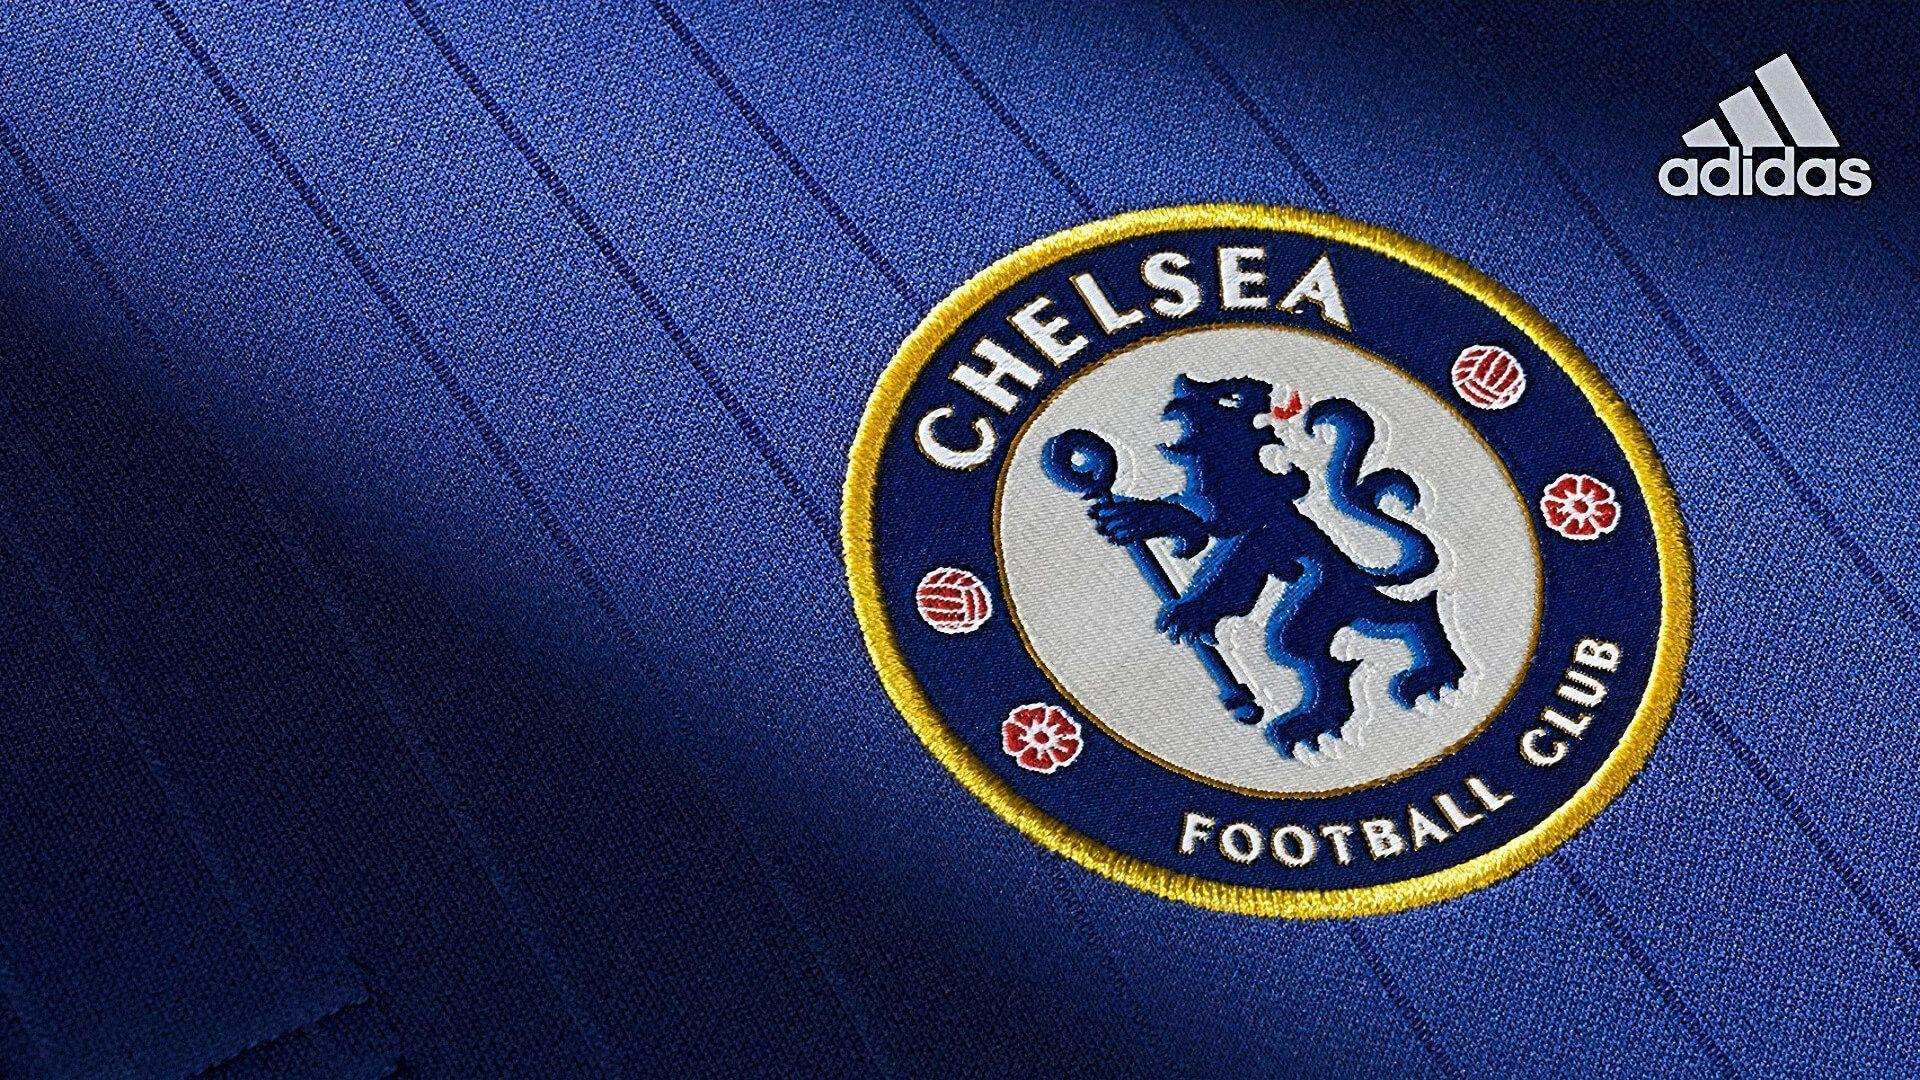 chelsea fc wallpapers for pc - photo #21